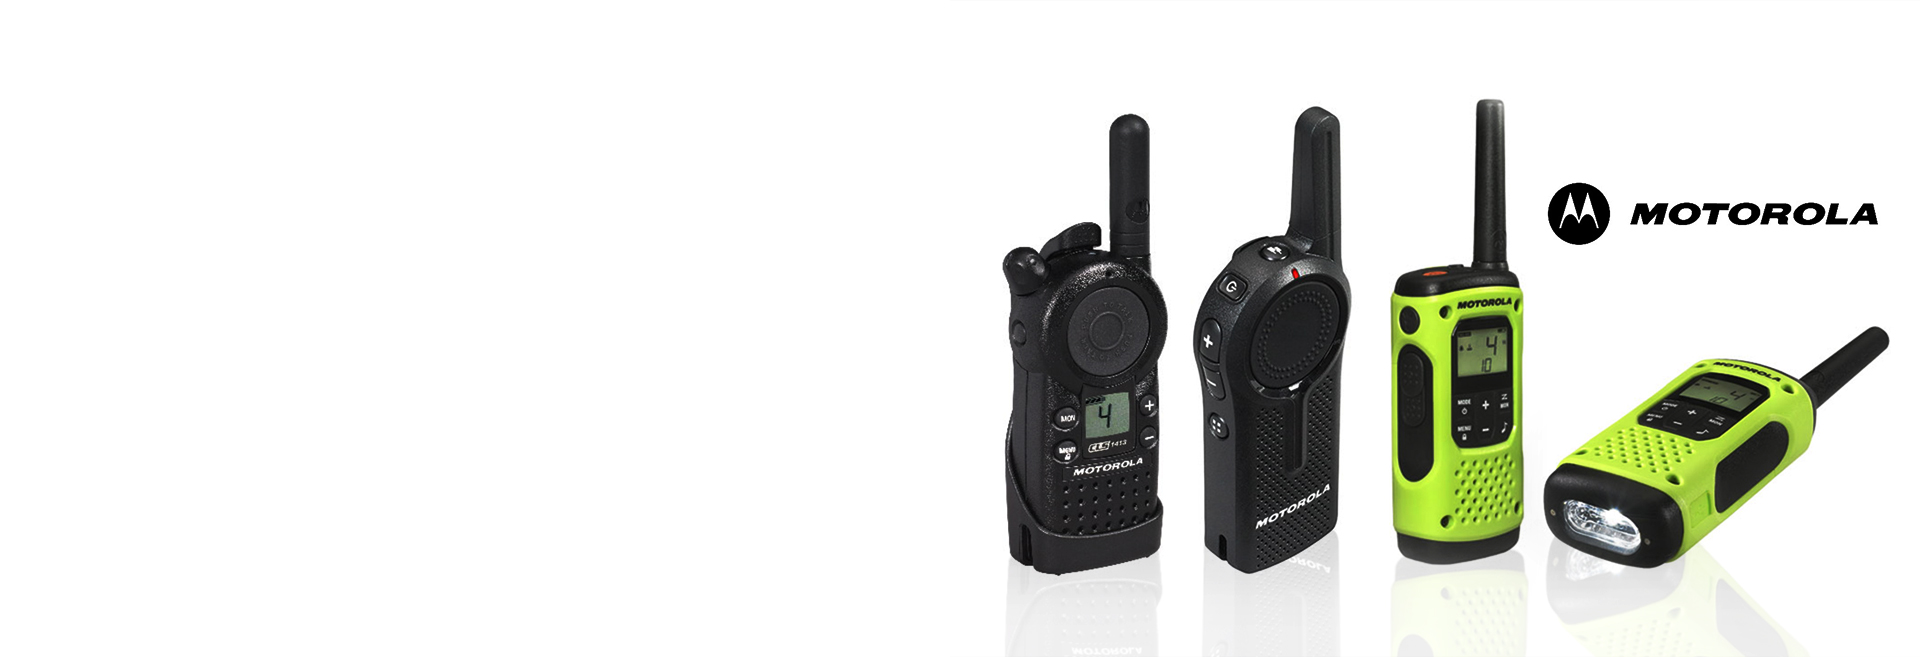 We offer the Full line-up of Motorola Business & Family Radios